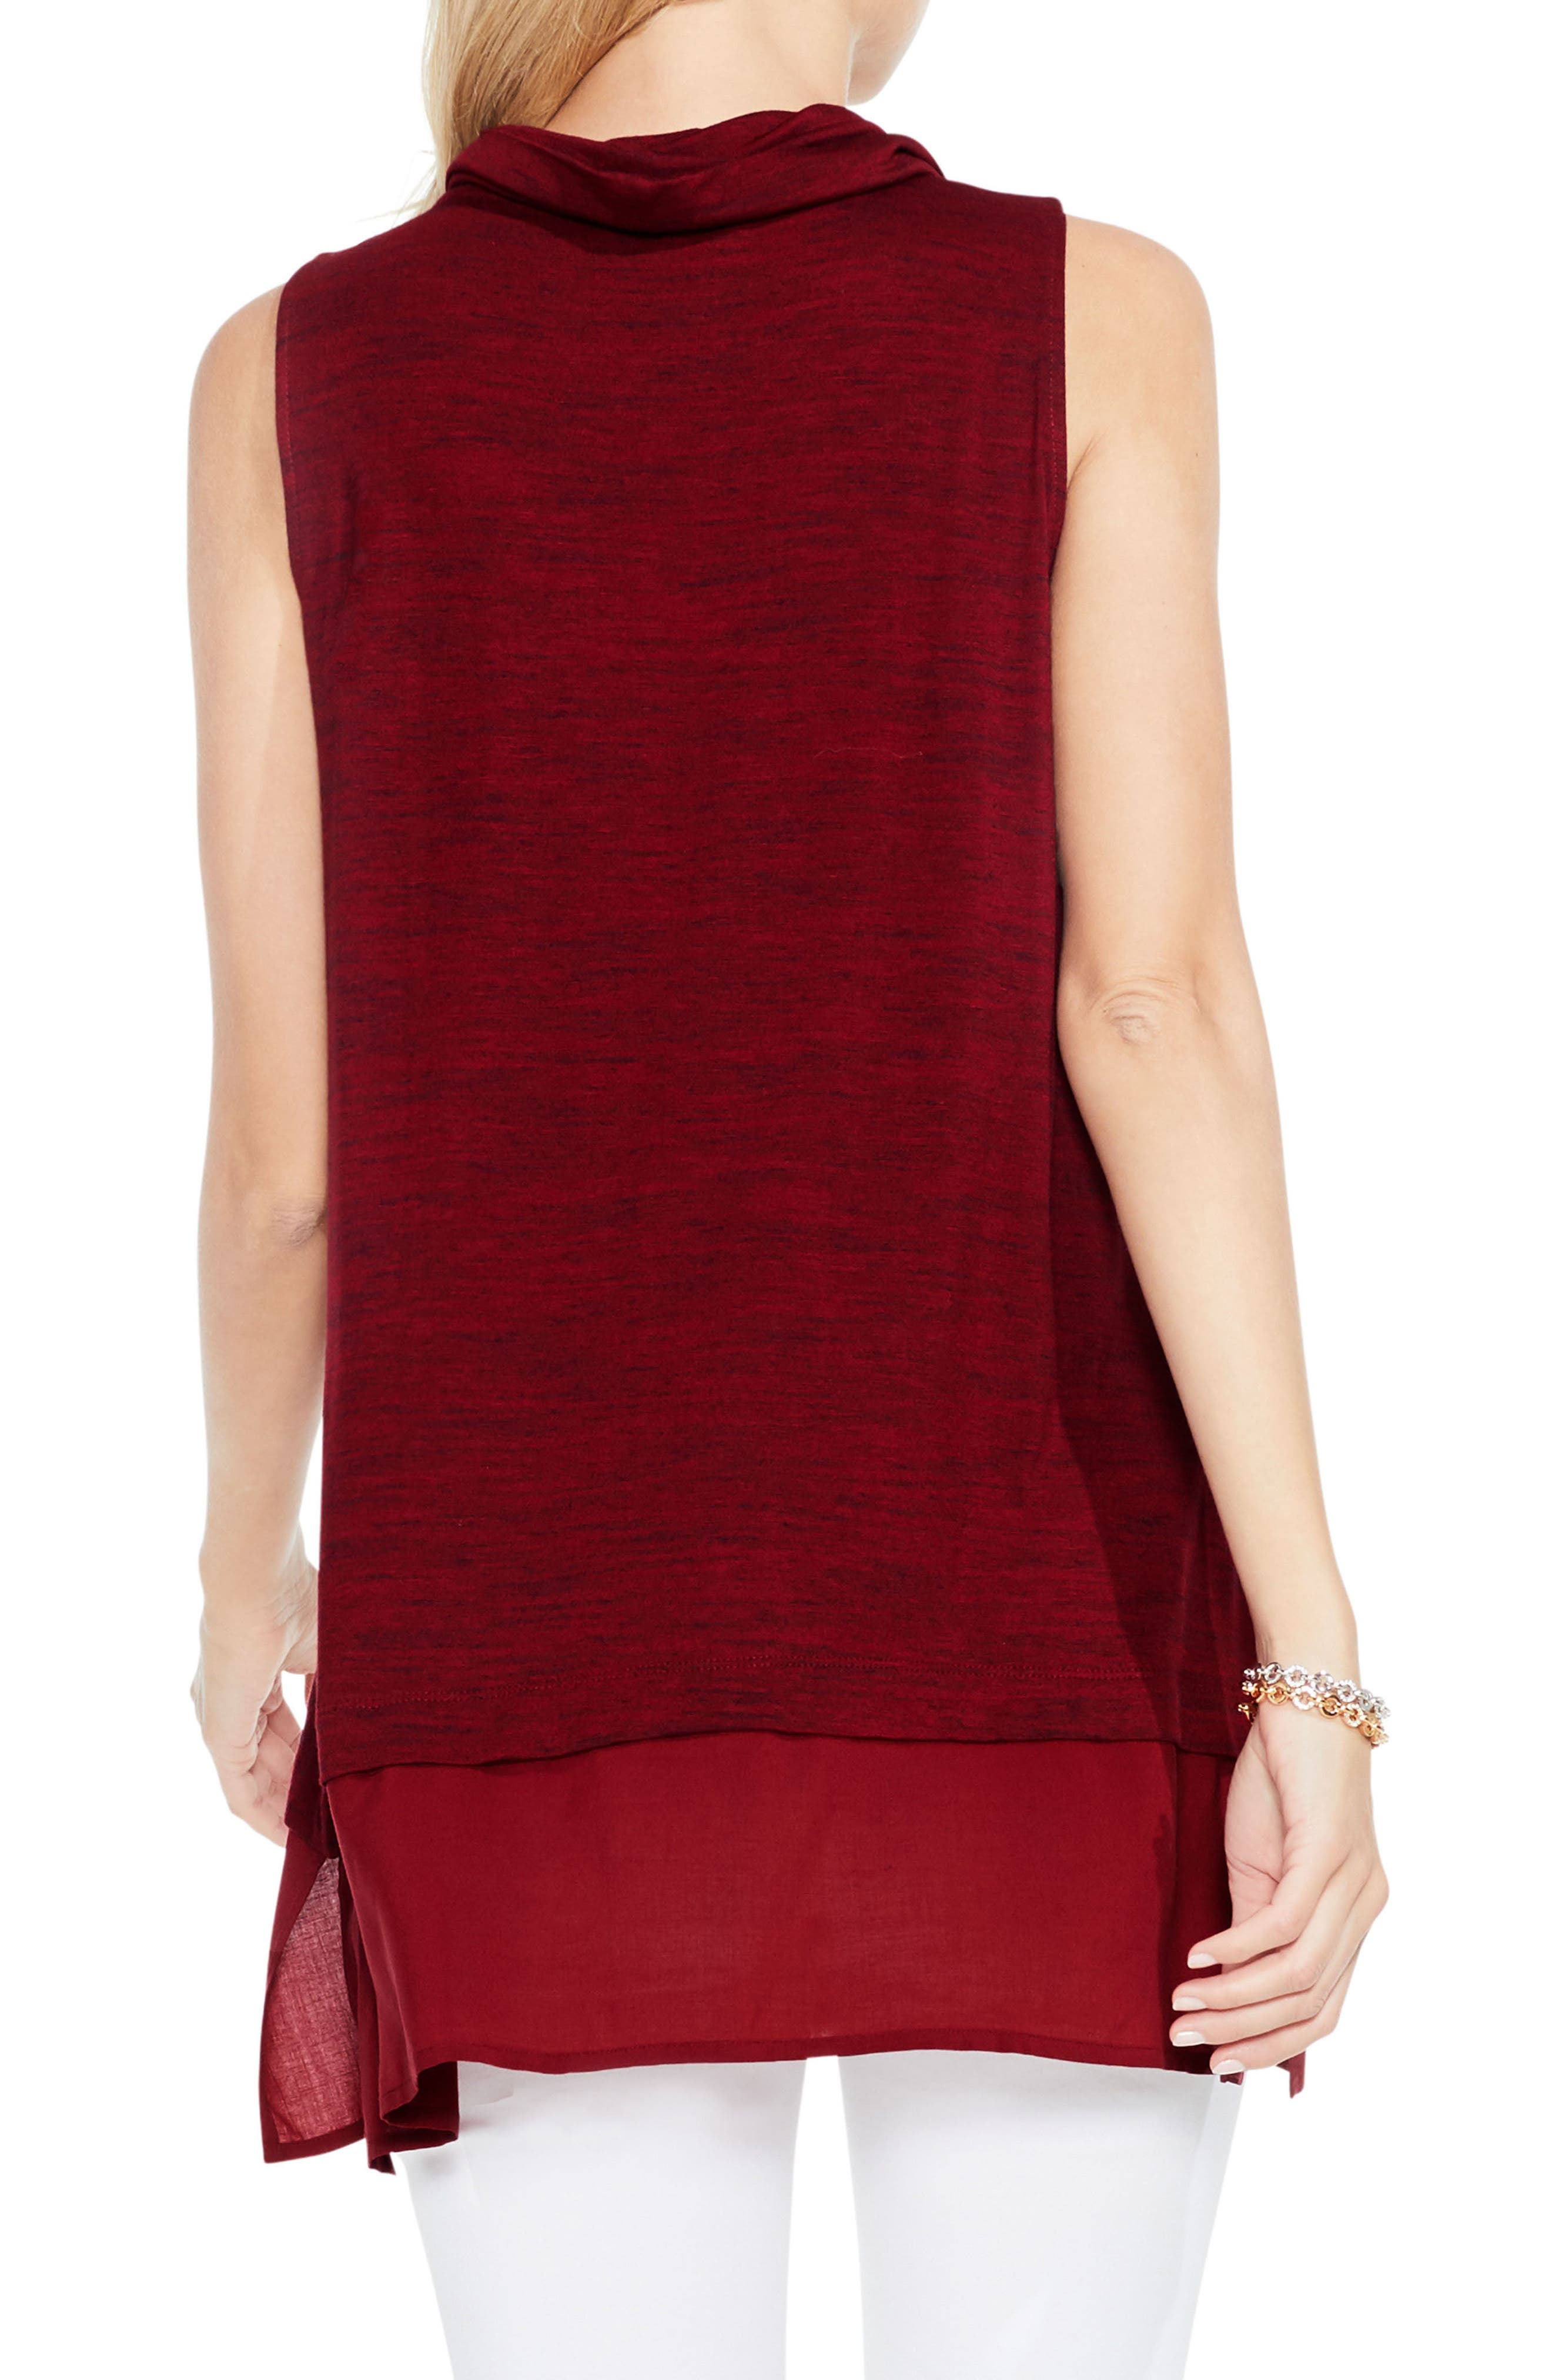 Alternate Image 3  - Two by Vince Camuto Space Dye Knit Top